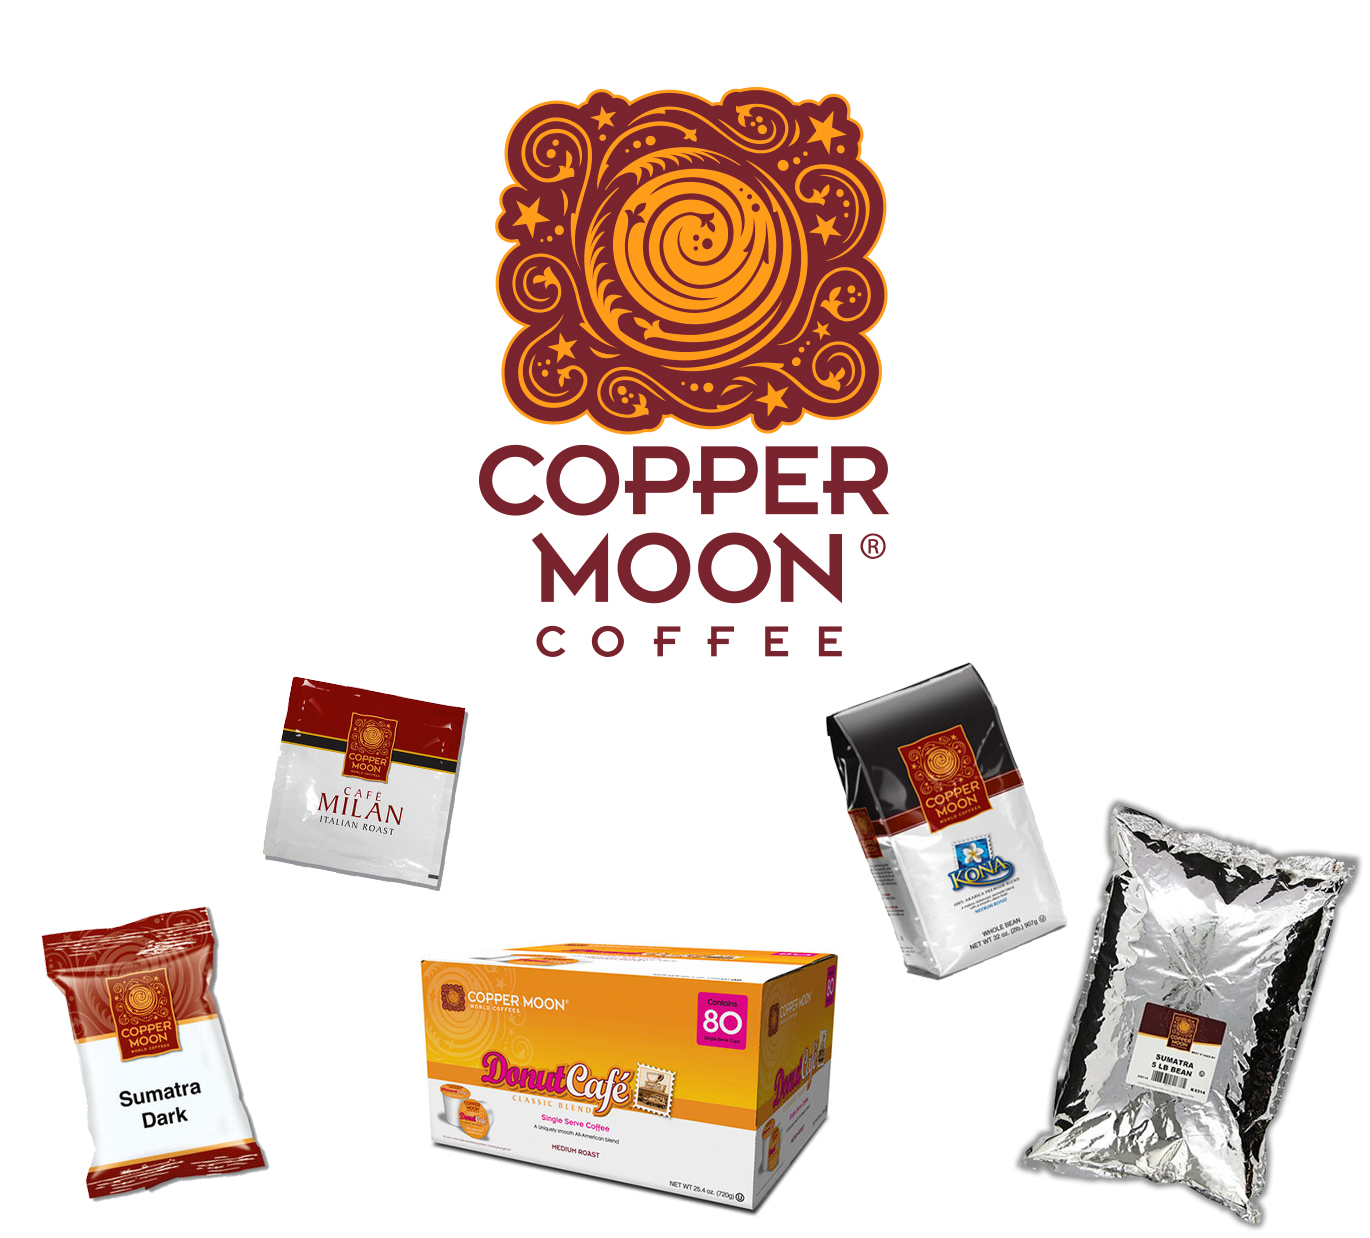 Copper-Moon-Brand-with-products.jpg